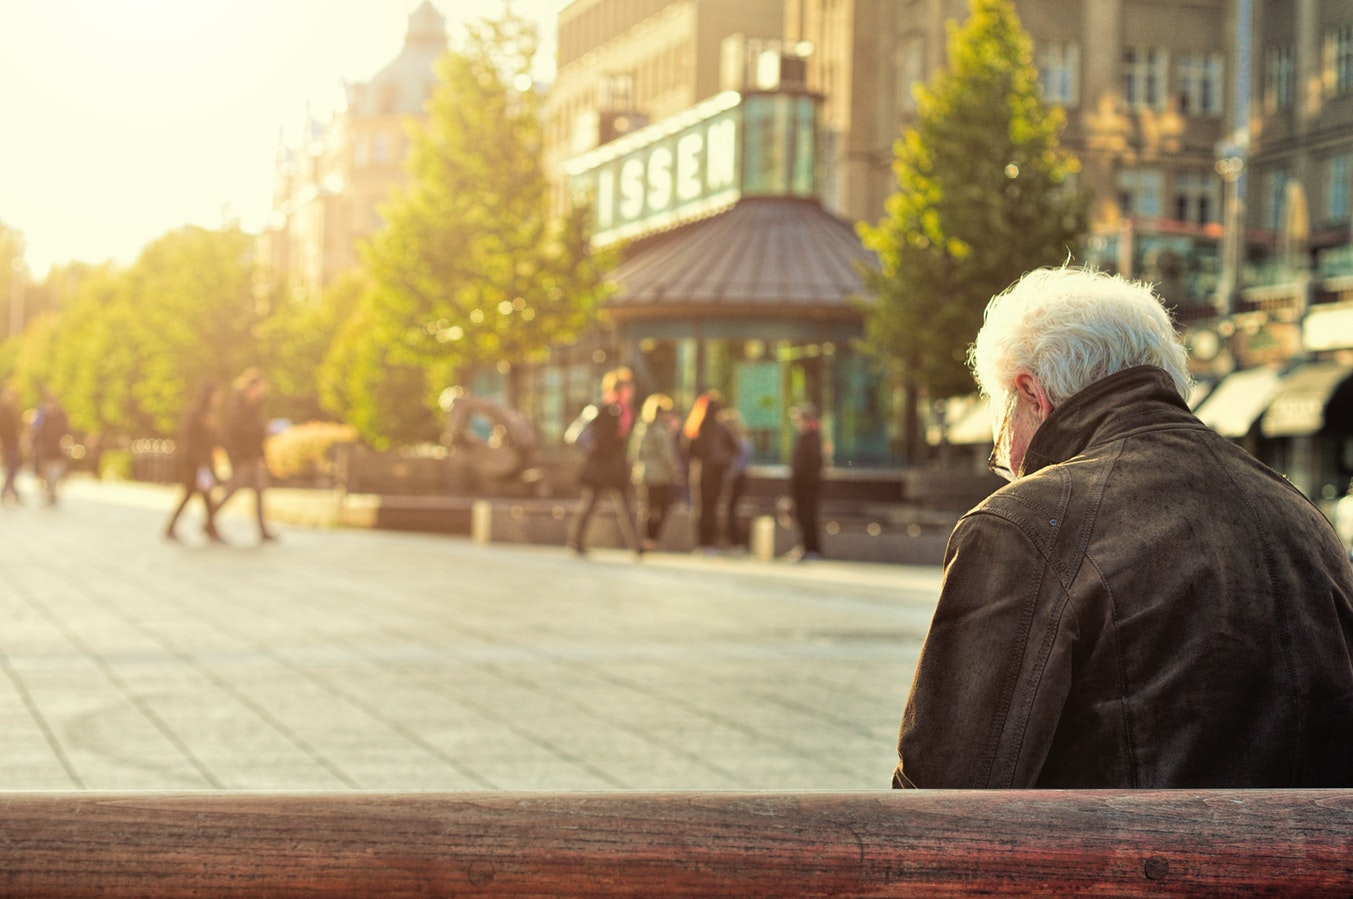 An older man sitting alone outdoors on a bench